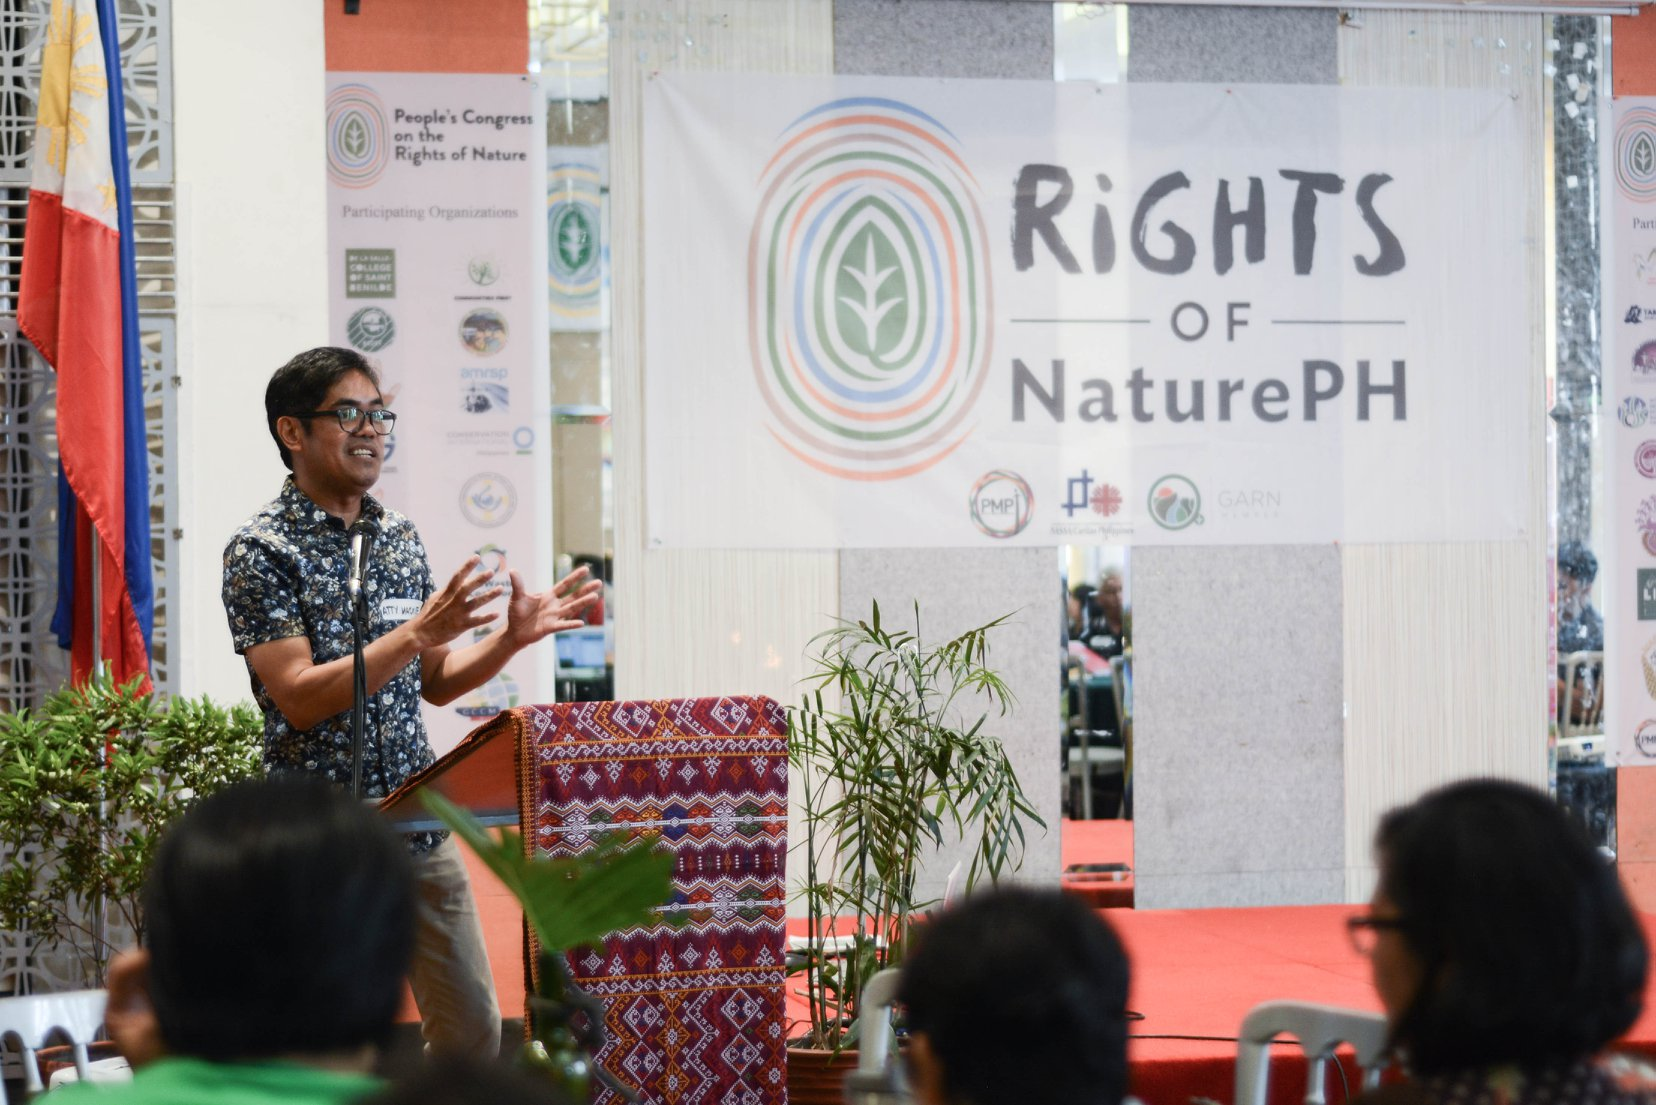 RIGHTS OF NATURE. Environmental lawyer Mario Maderazo addresses the People's Congress on the Rights of Nature in Quezon City on July 20, 2019. Photo from: PMPI, Salakyag para sa Sangnilikha Facebook page